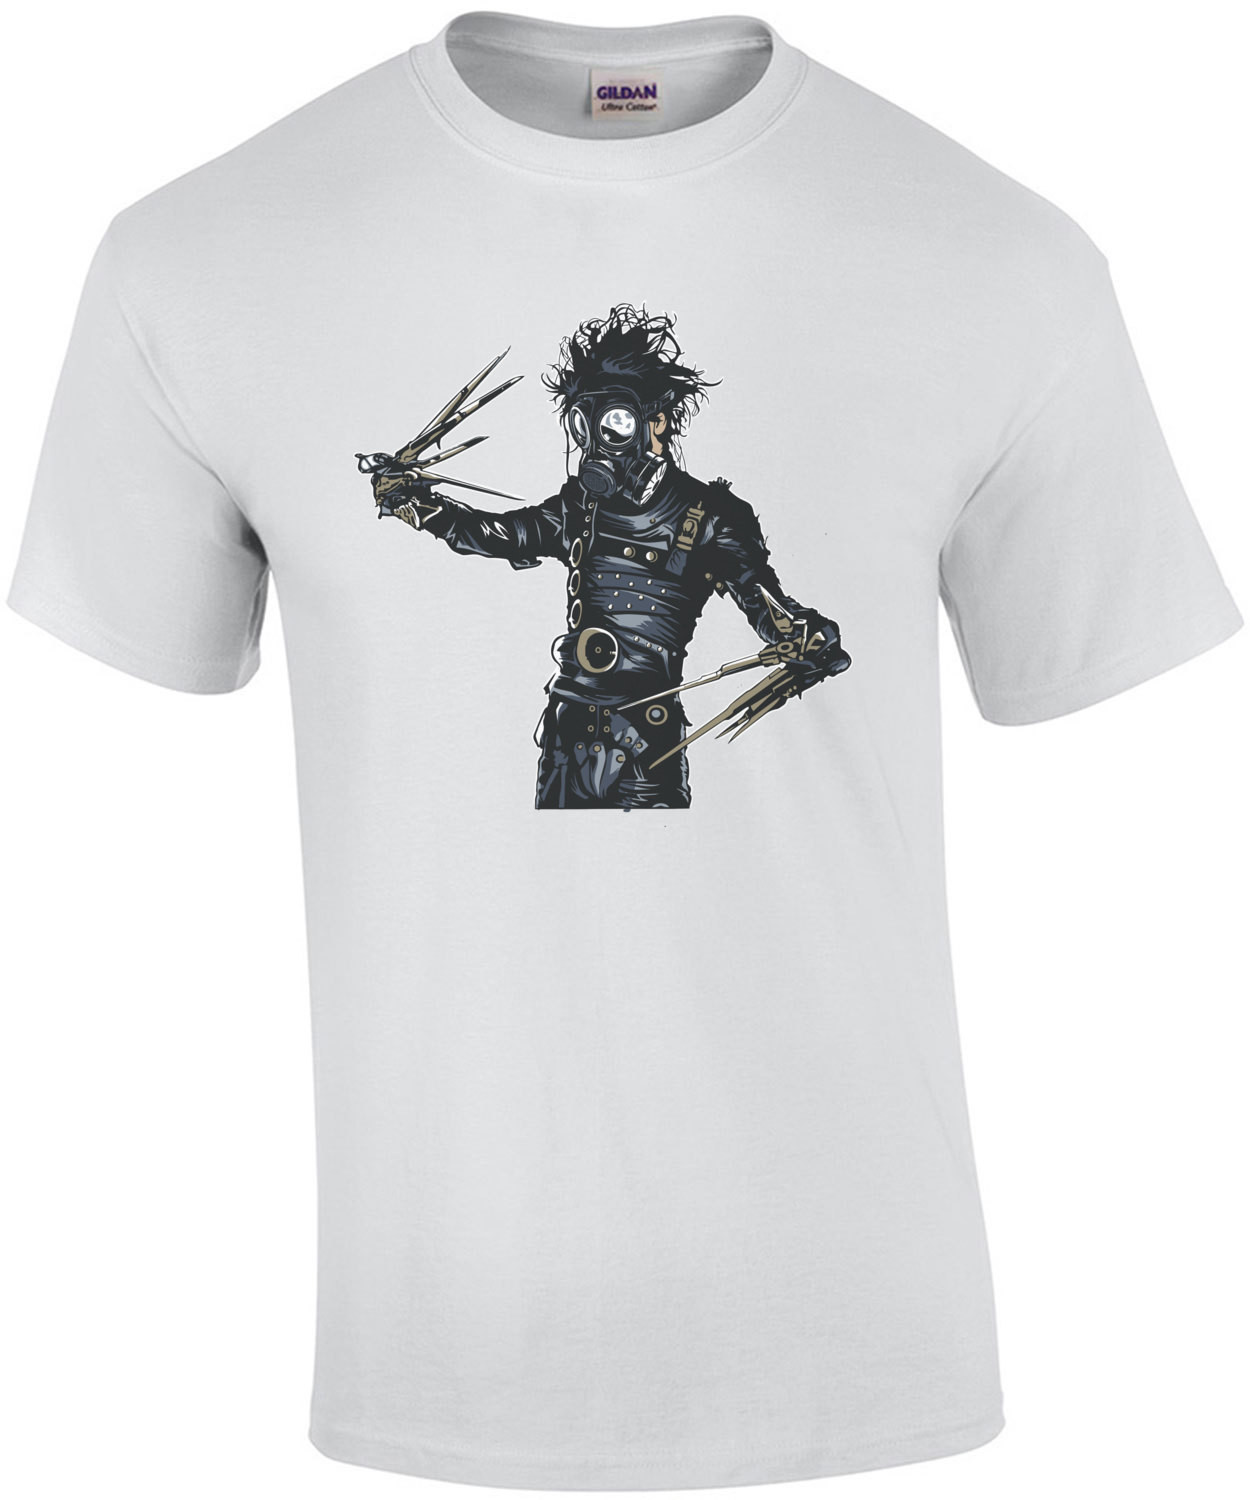 Edward Scissorhands Steampunk T-Shirt